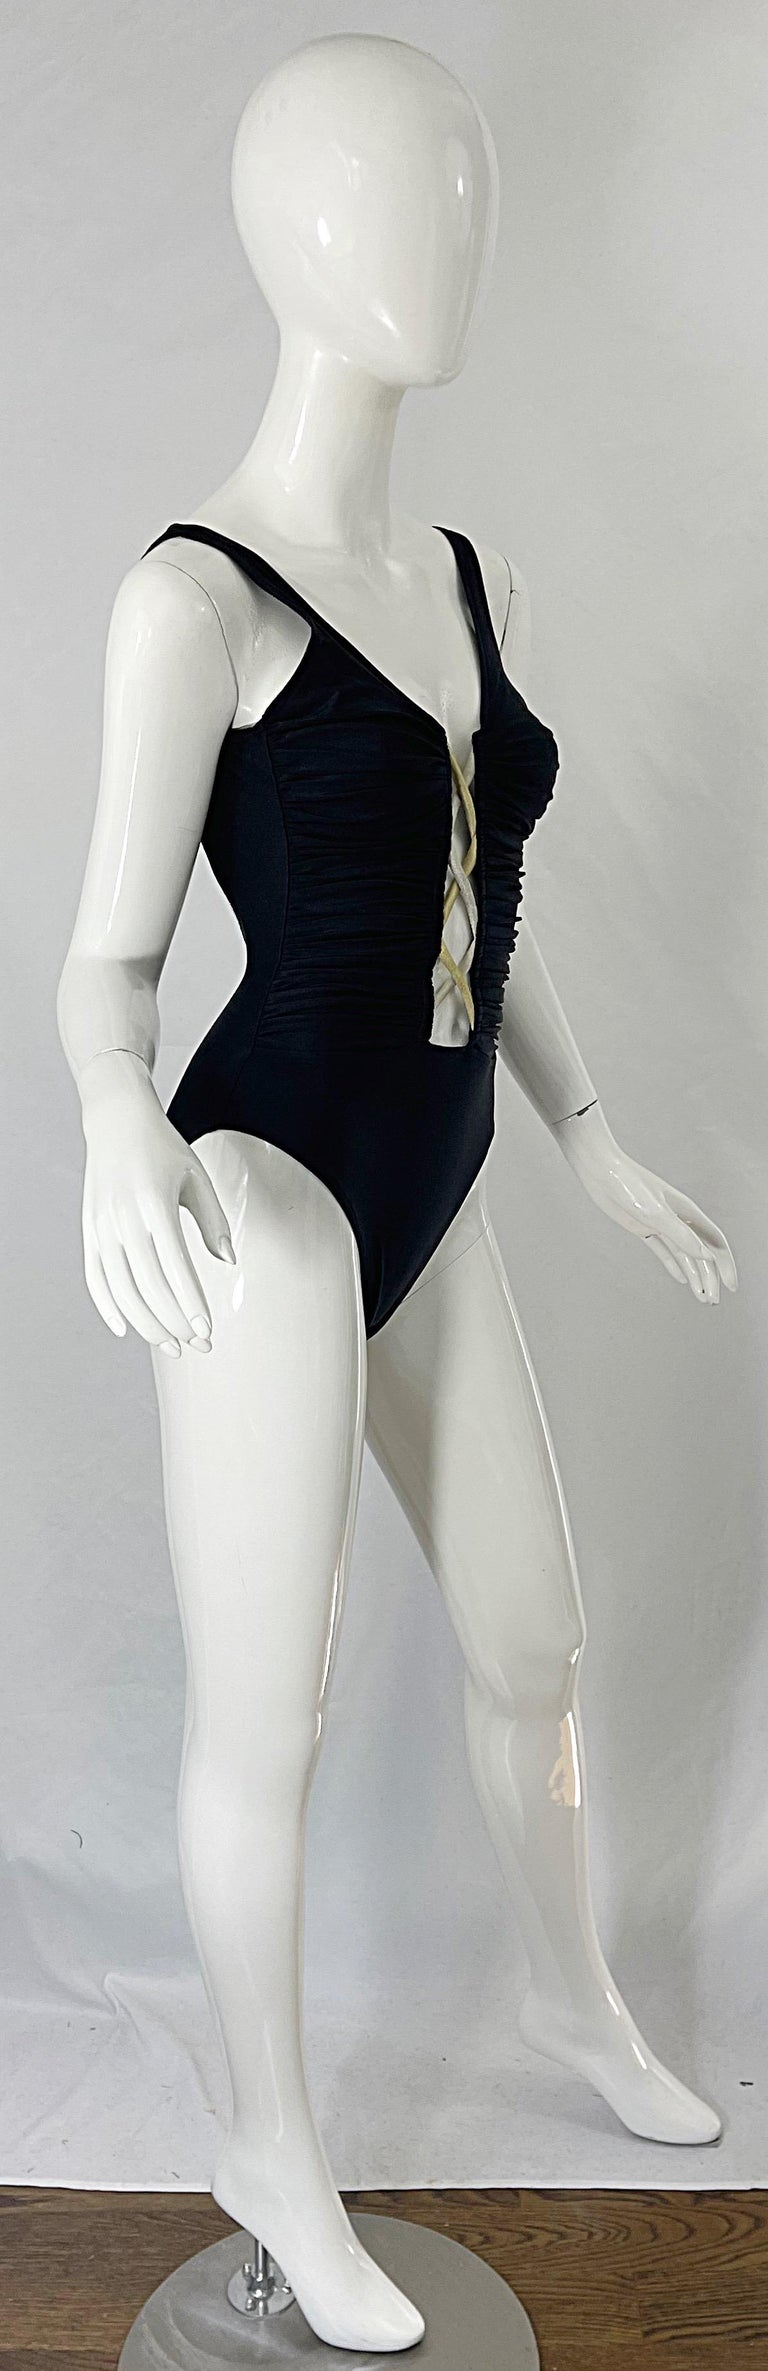 Bill Blass 1990s Black Sexy Cut Out Size 6 / 8 One Piece 90s Swimsuit Bodysuit For Sale 8